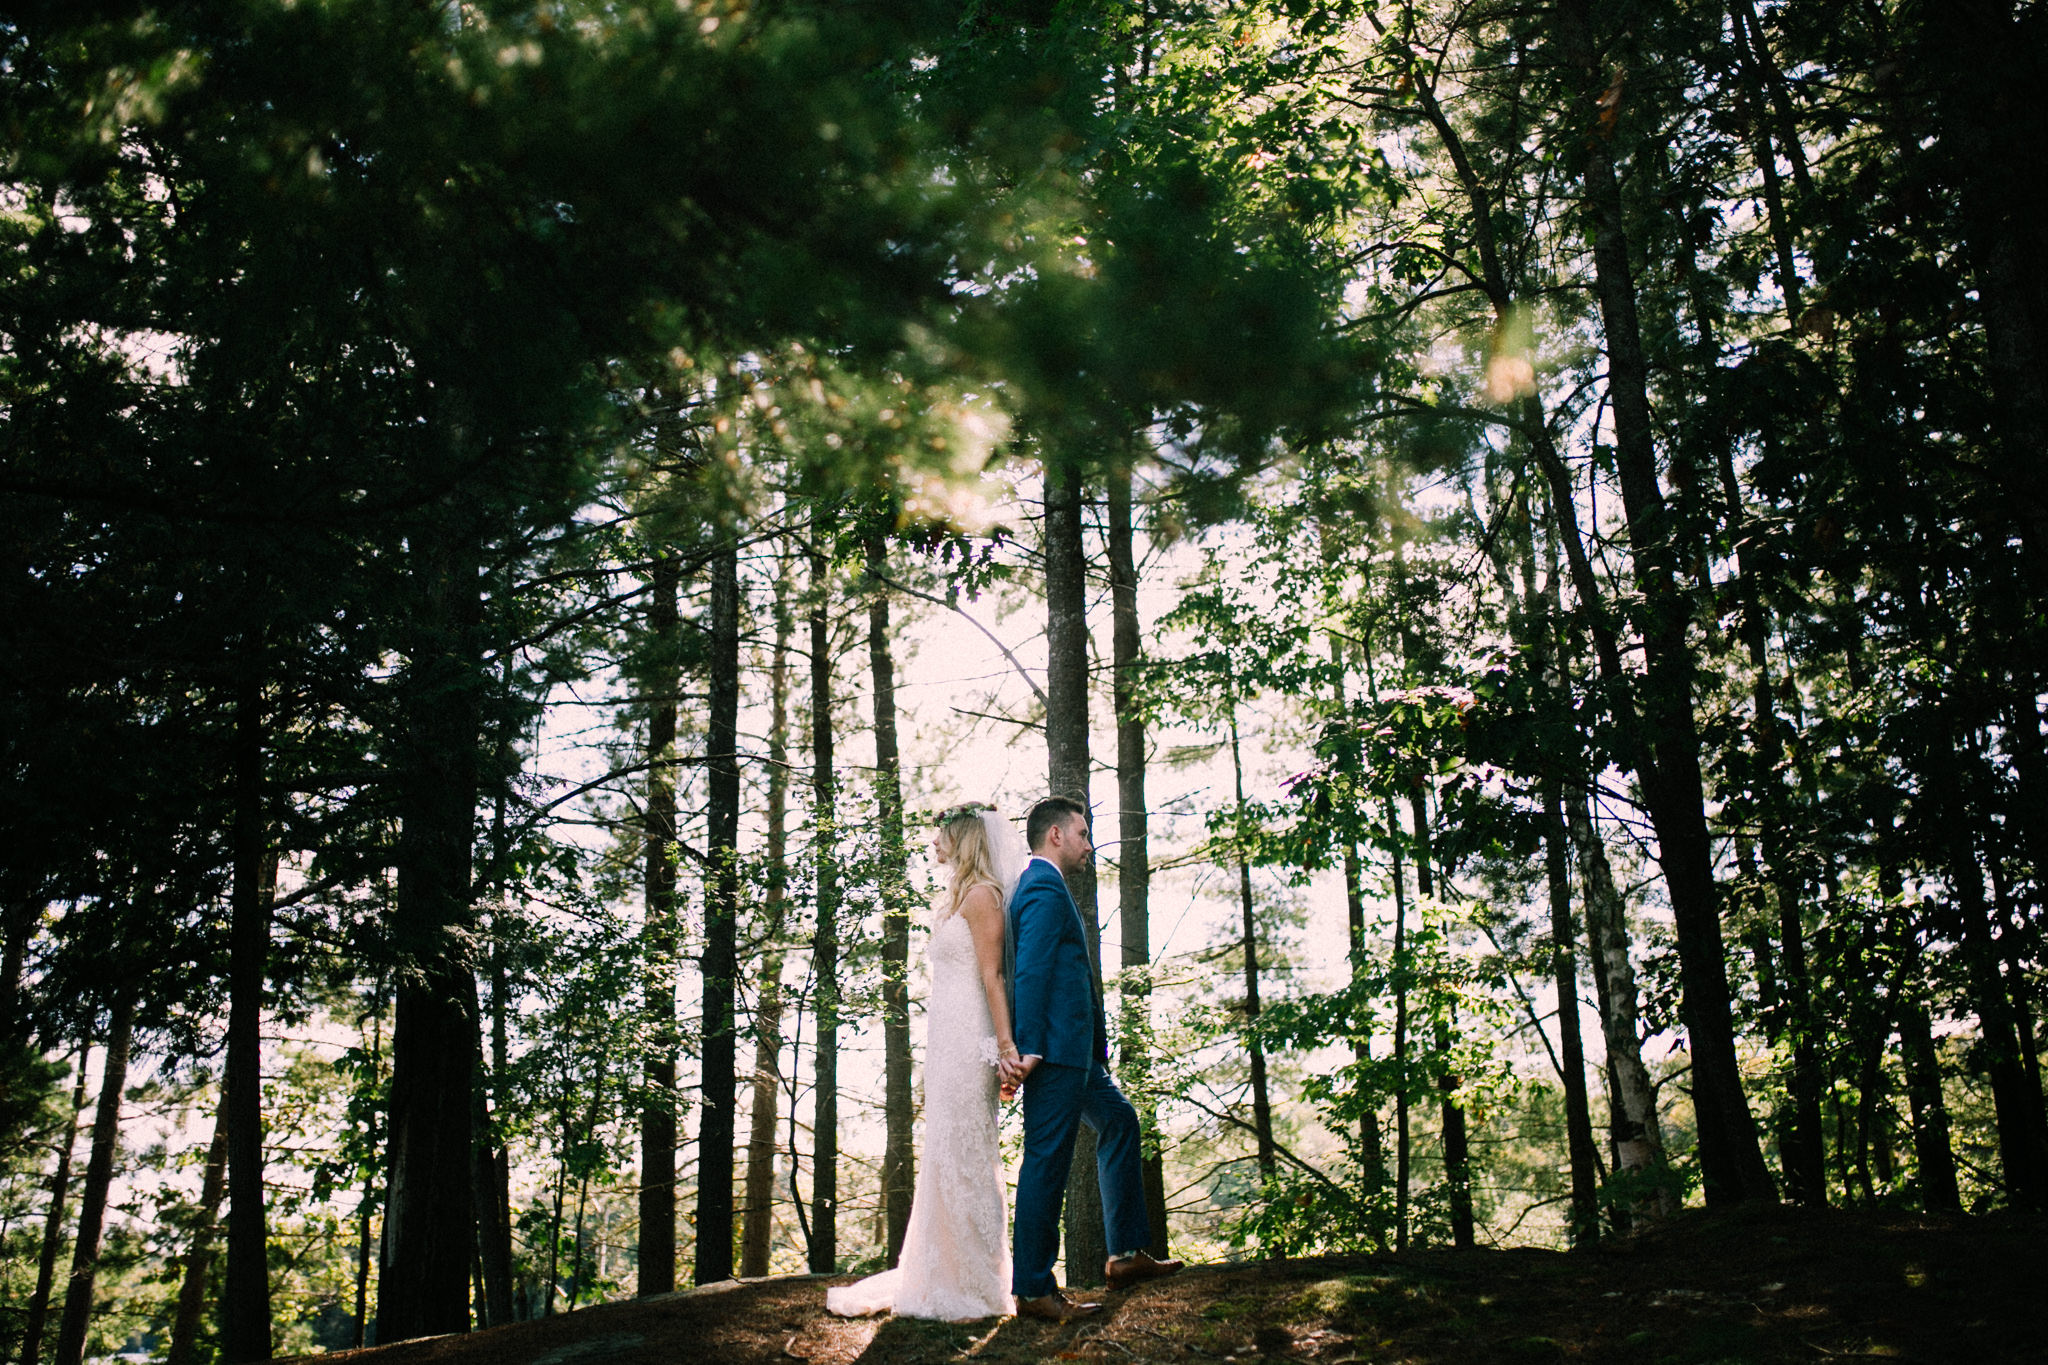 Muskoka lakeside wedding at Port Cunnington Lodge by Max Wong Photo (23)